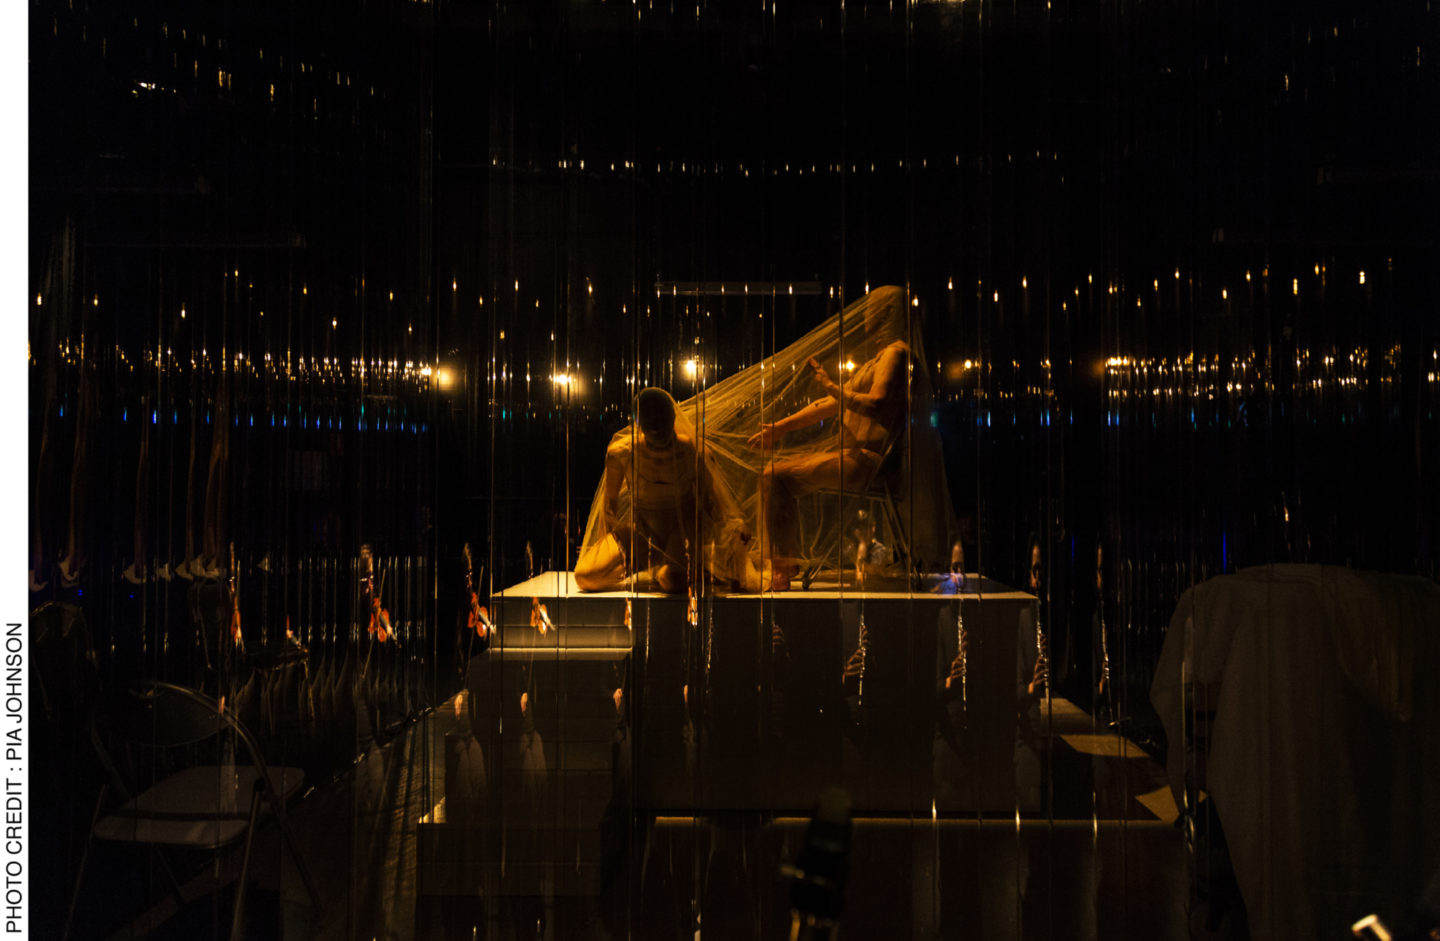 <p>Performers Lauren Langlois and Yoni Prior in the opening Act of <i>Dybbuks </i>are shrouded atop the central raised platform of the stage, moving slowly around each other's bodies. The musicians' reflections can be seen against the perspex curtain. Photo Credit: PiaJohnson.</p>